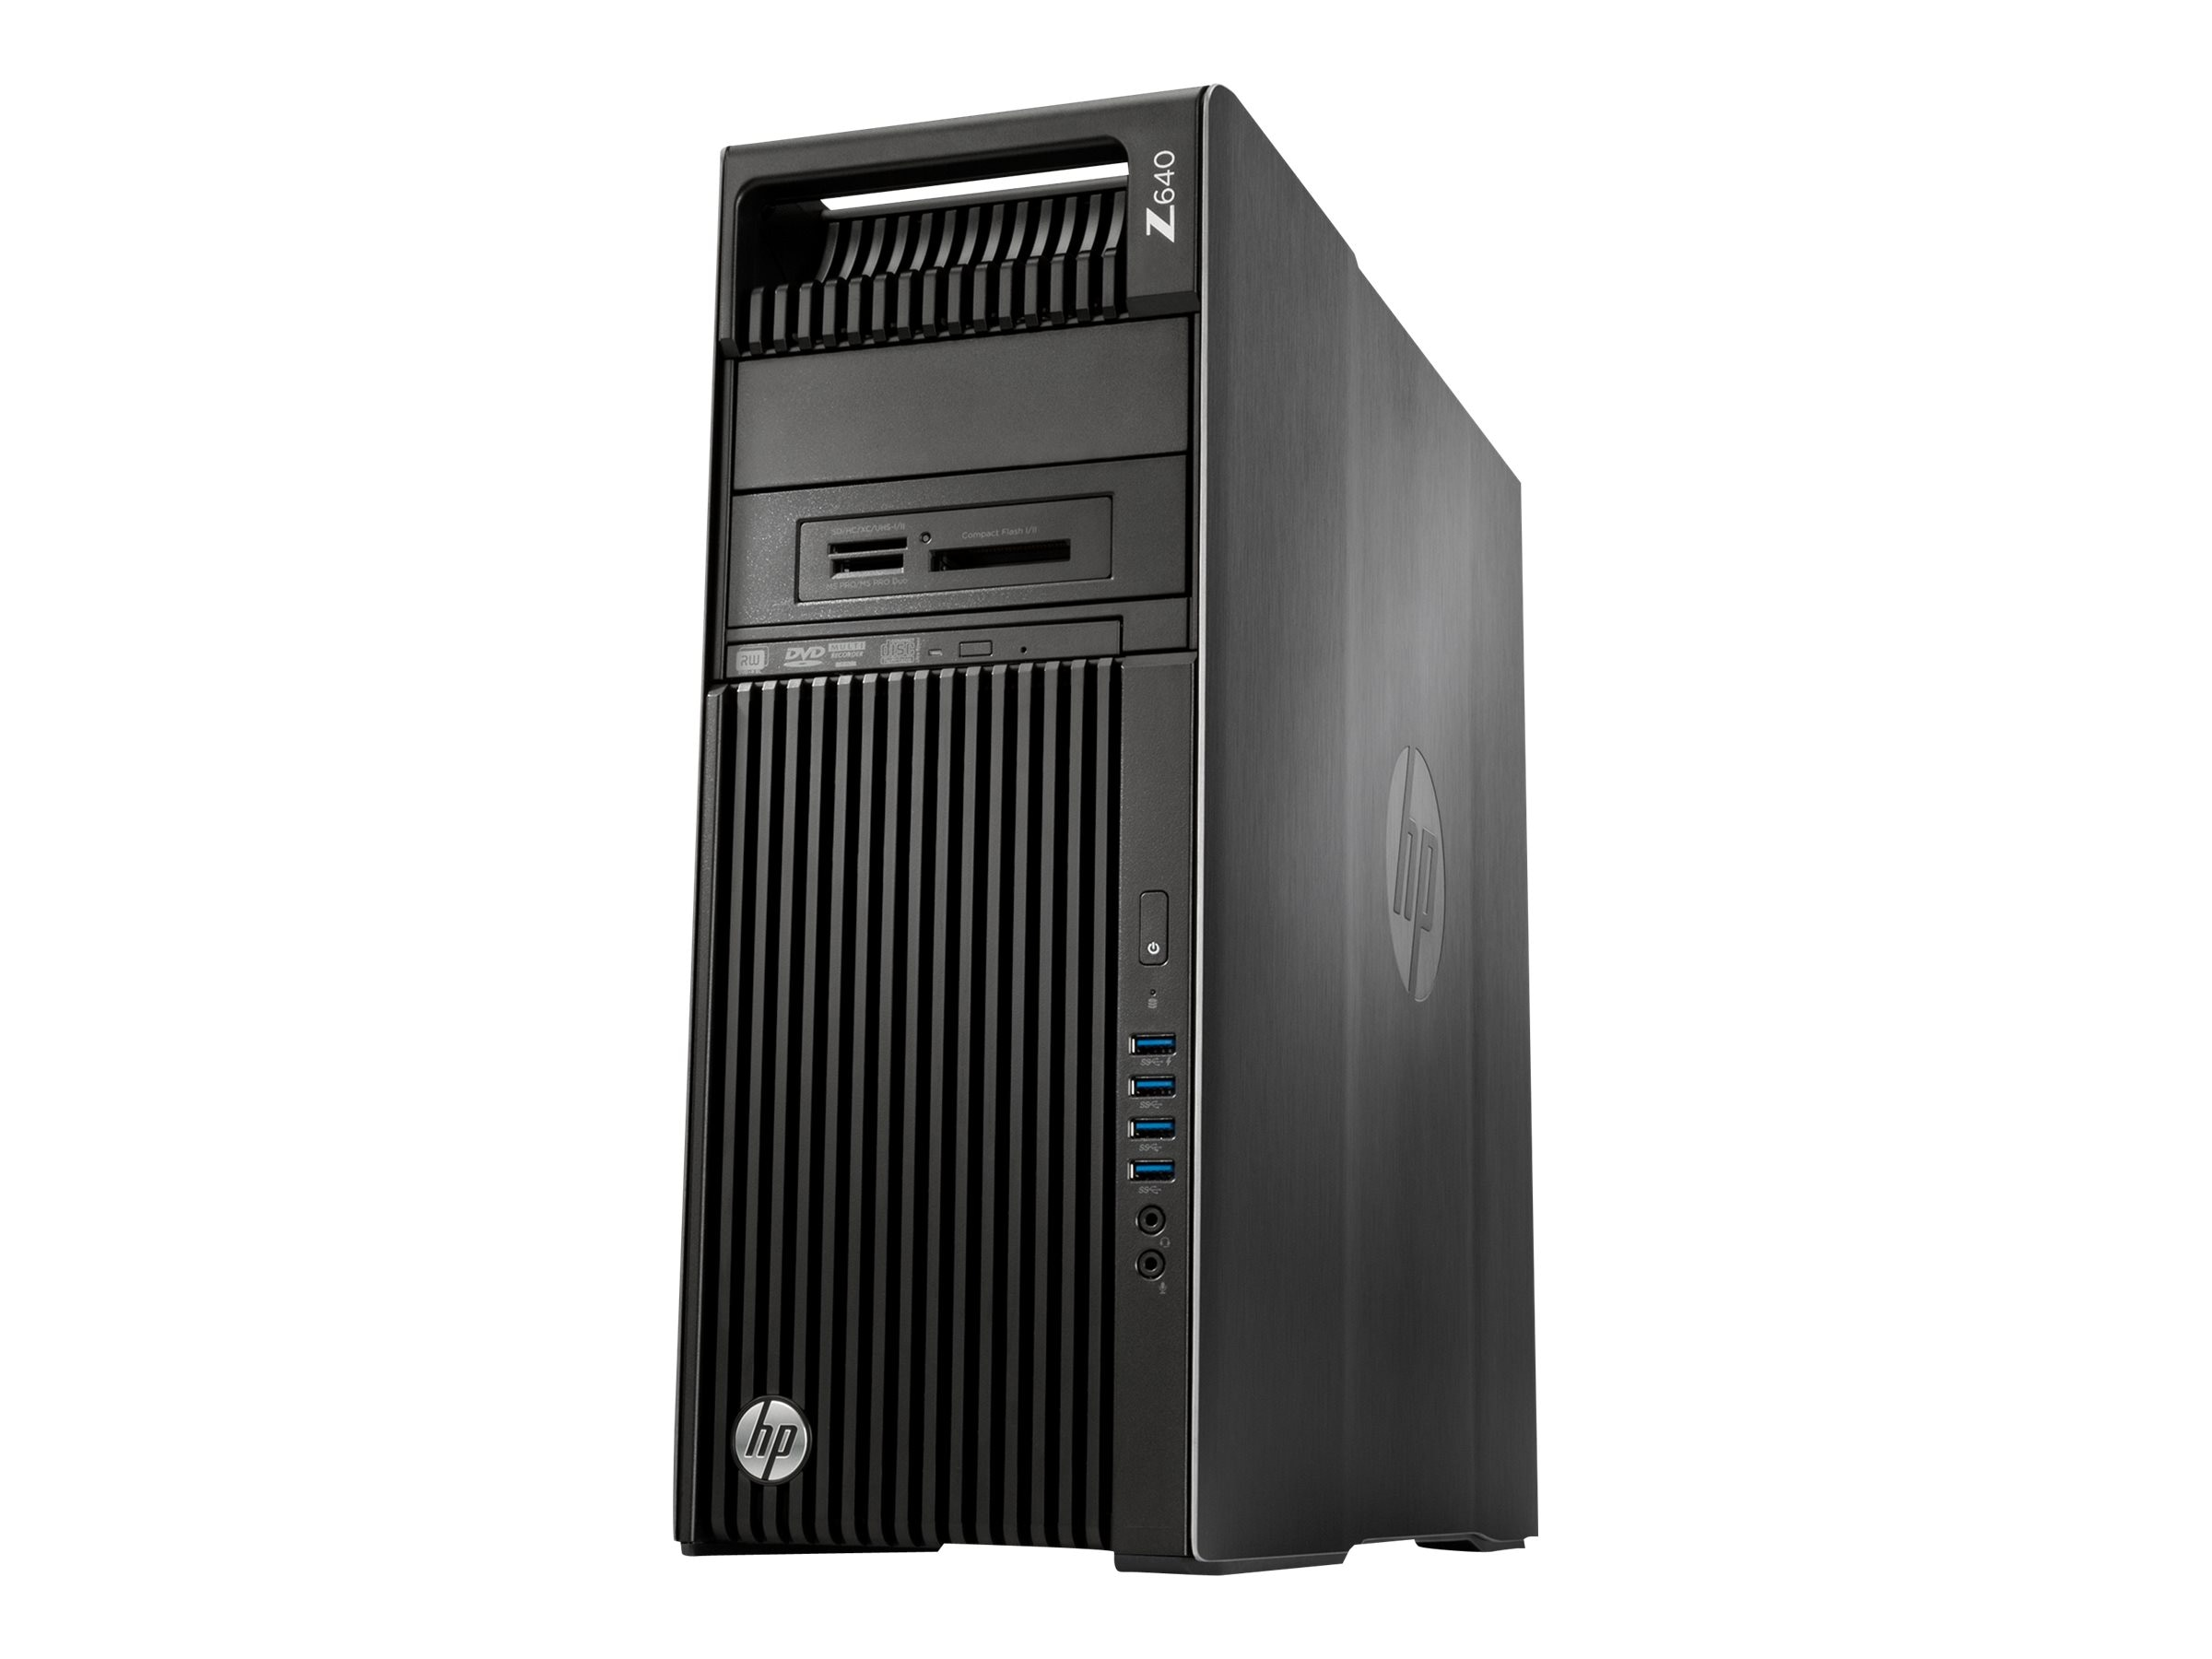 HP Z640 2.4GHz Xeon Microsoft Windows 7 Professional 64-bit Edition   Windows 8.1 Pro, P0V65UT#ABA, 26271845, Workstations